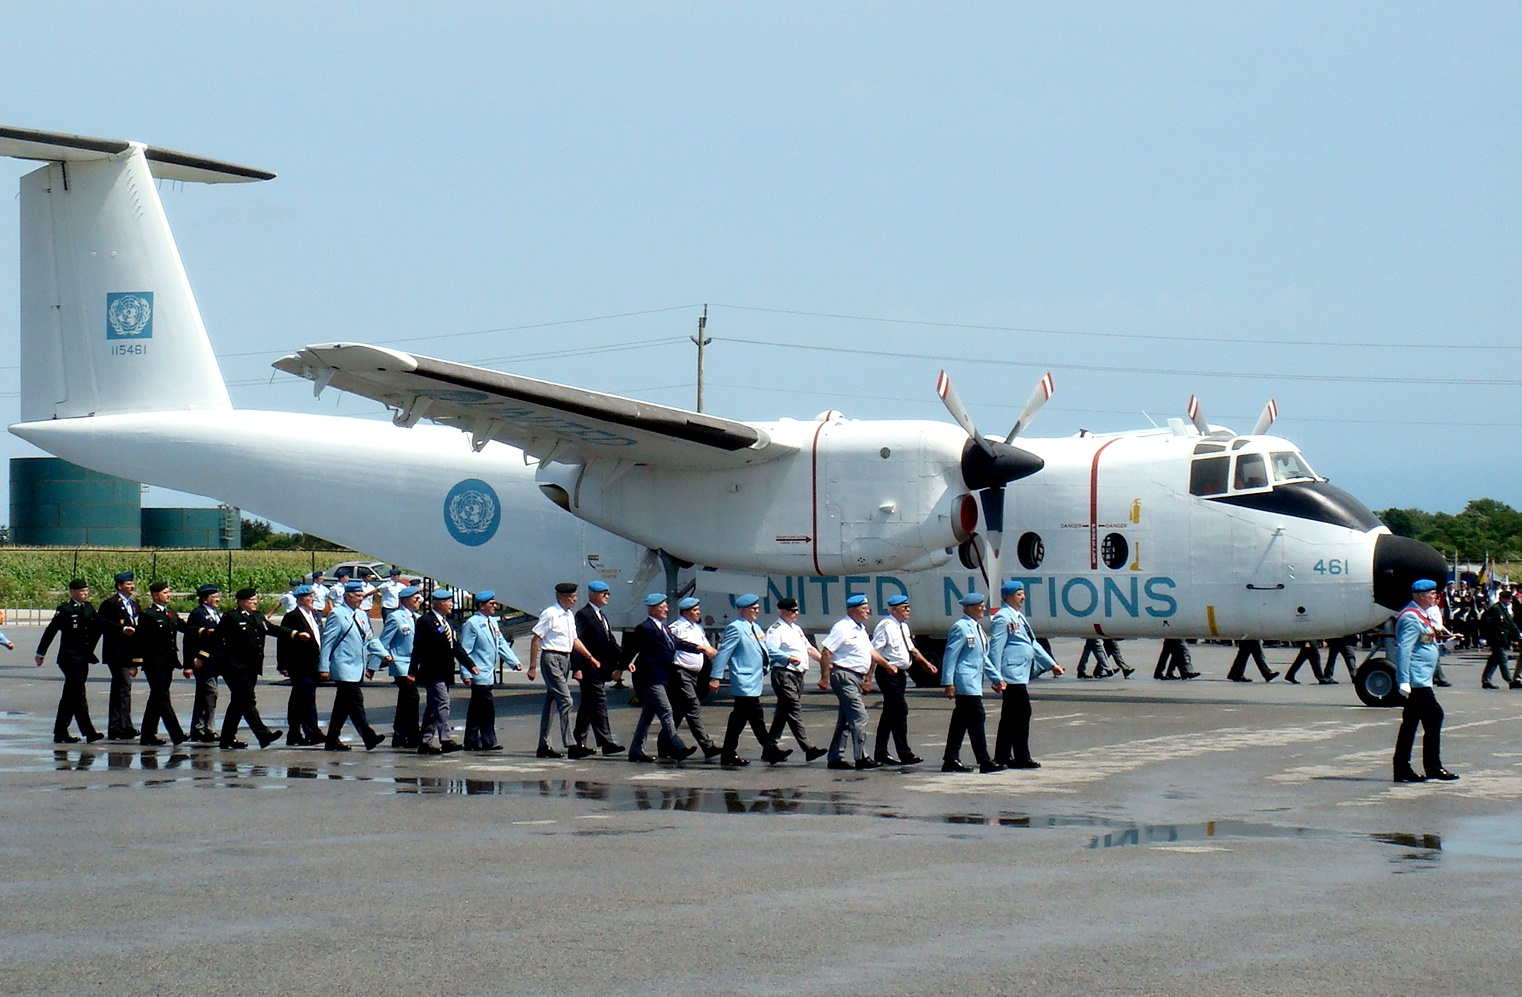 Members of the Canadian Association of Veterans in United Nations Peacekeeping parade during a dedication ceremony of a Buffalo aircraft restored in U.N. livery. The ceremony was held at the Canadian Warplane Heritage Museum in Hamilton, Ontario, on August 9, 2009. PHOTO: Submitted